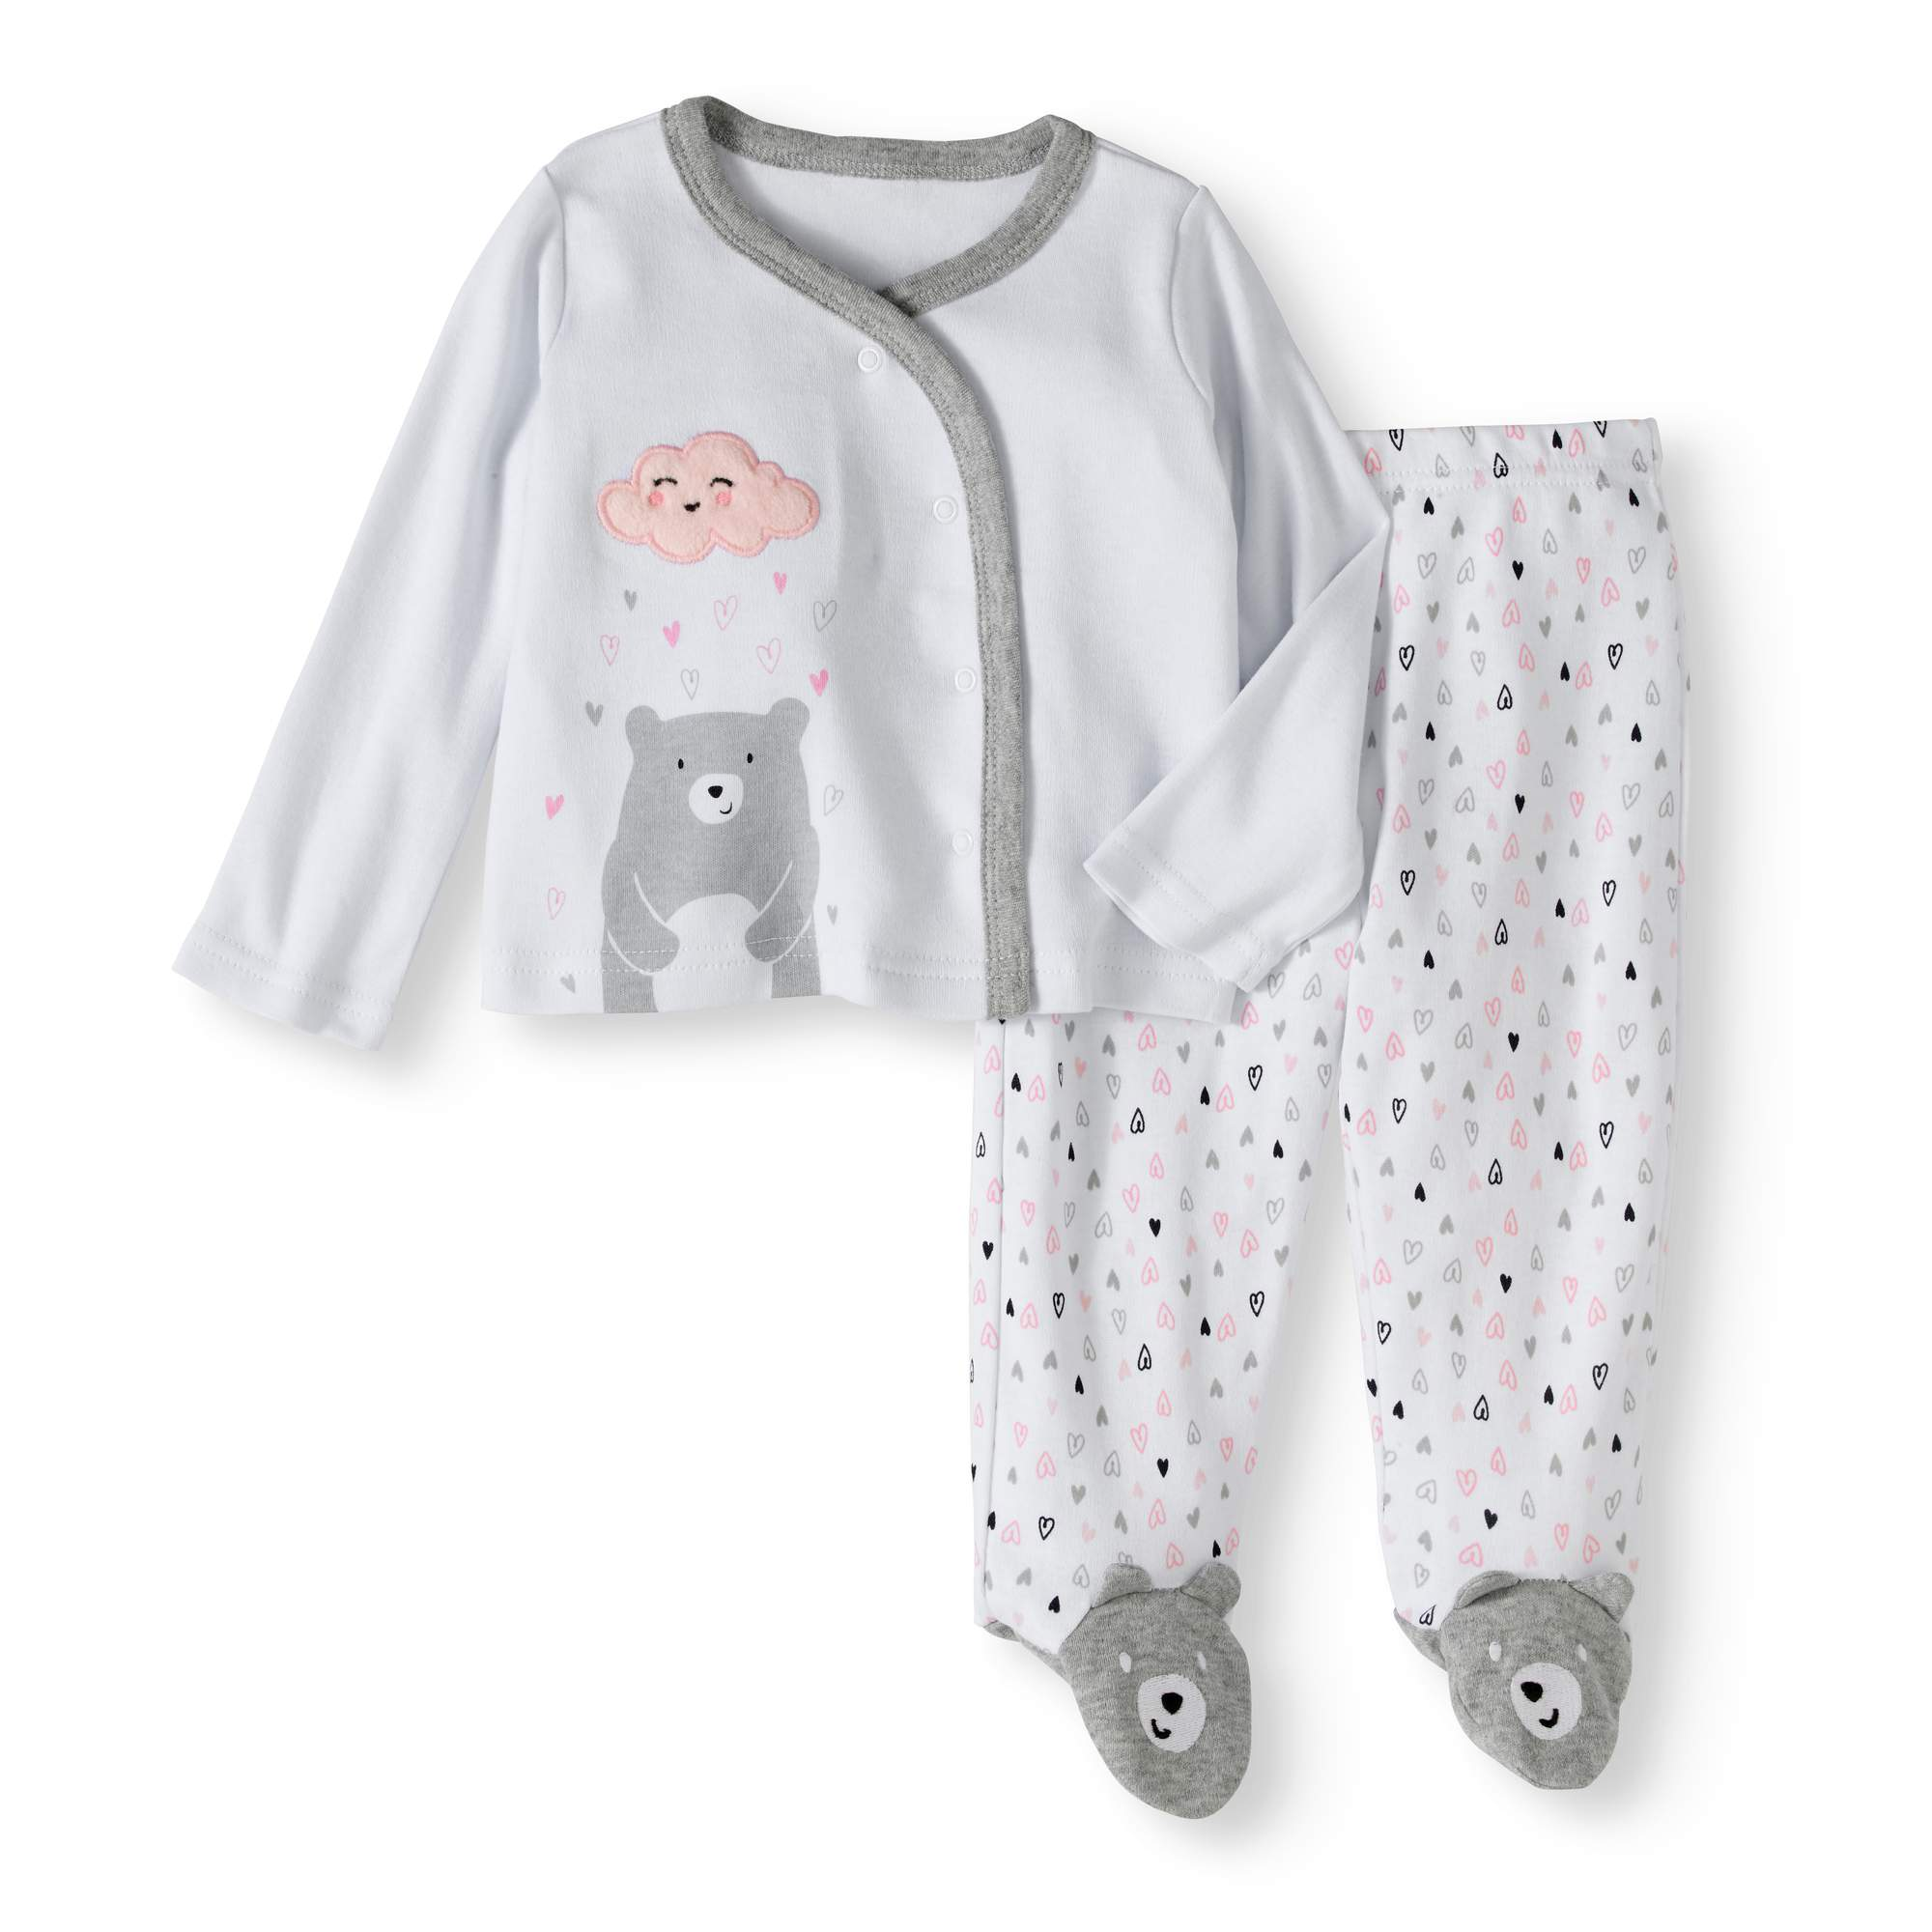 Newborn Baby Girls' Bear Kimono and Footed Pants 2-Piece Outfit Set